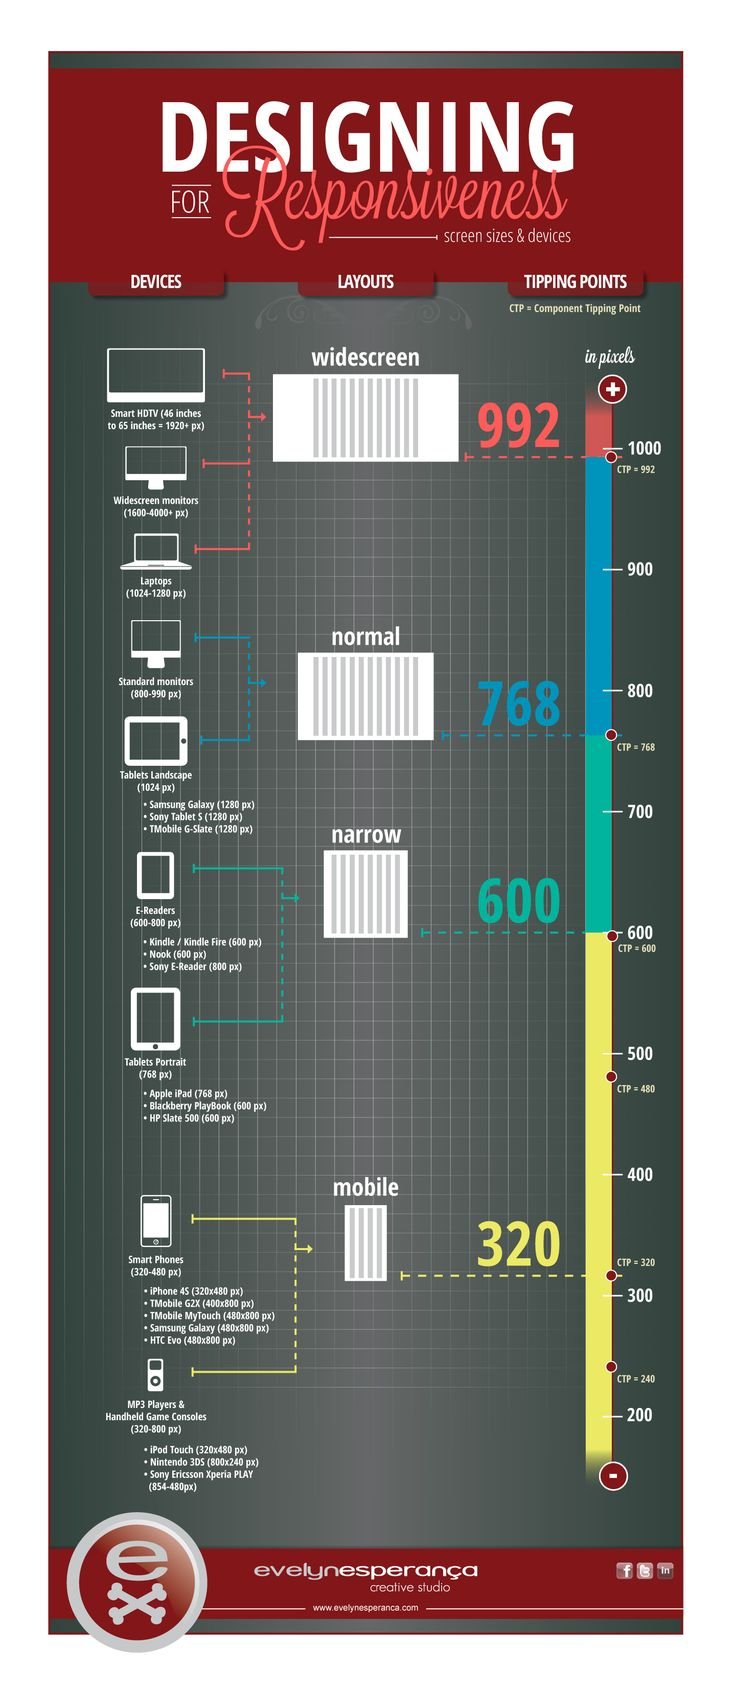 My responsive design devices chart - #rwd - #responsivedesign - www.eewee.fr